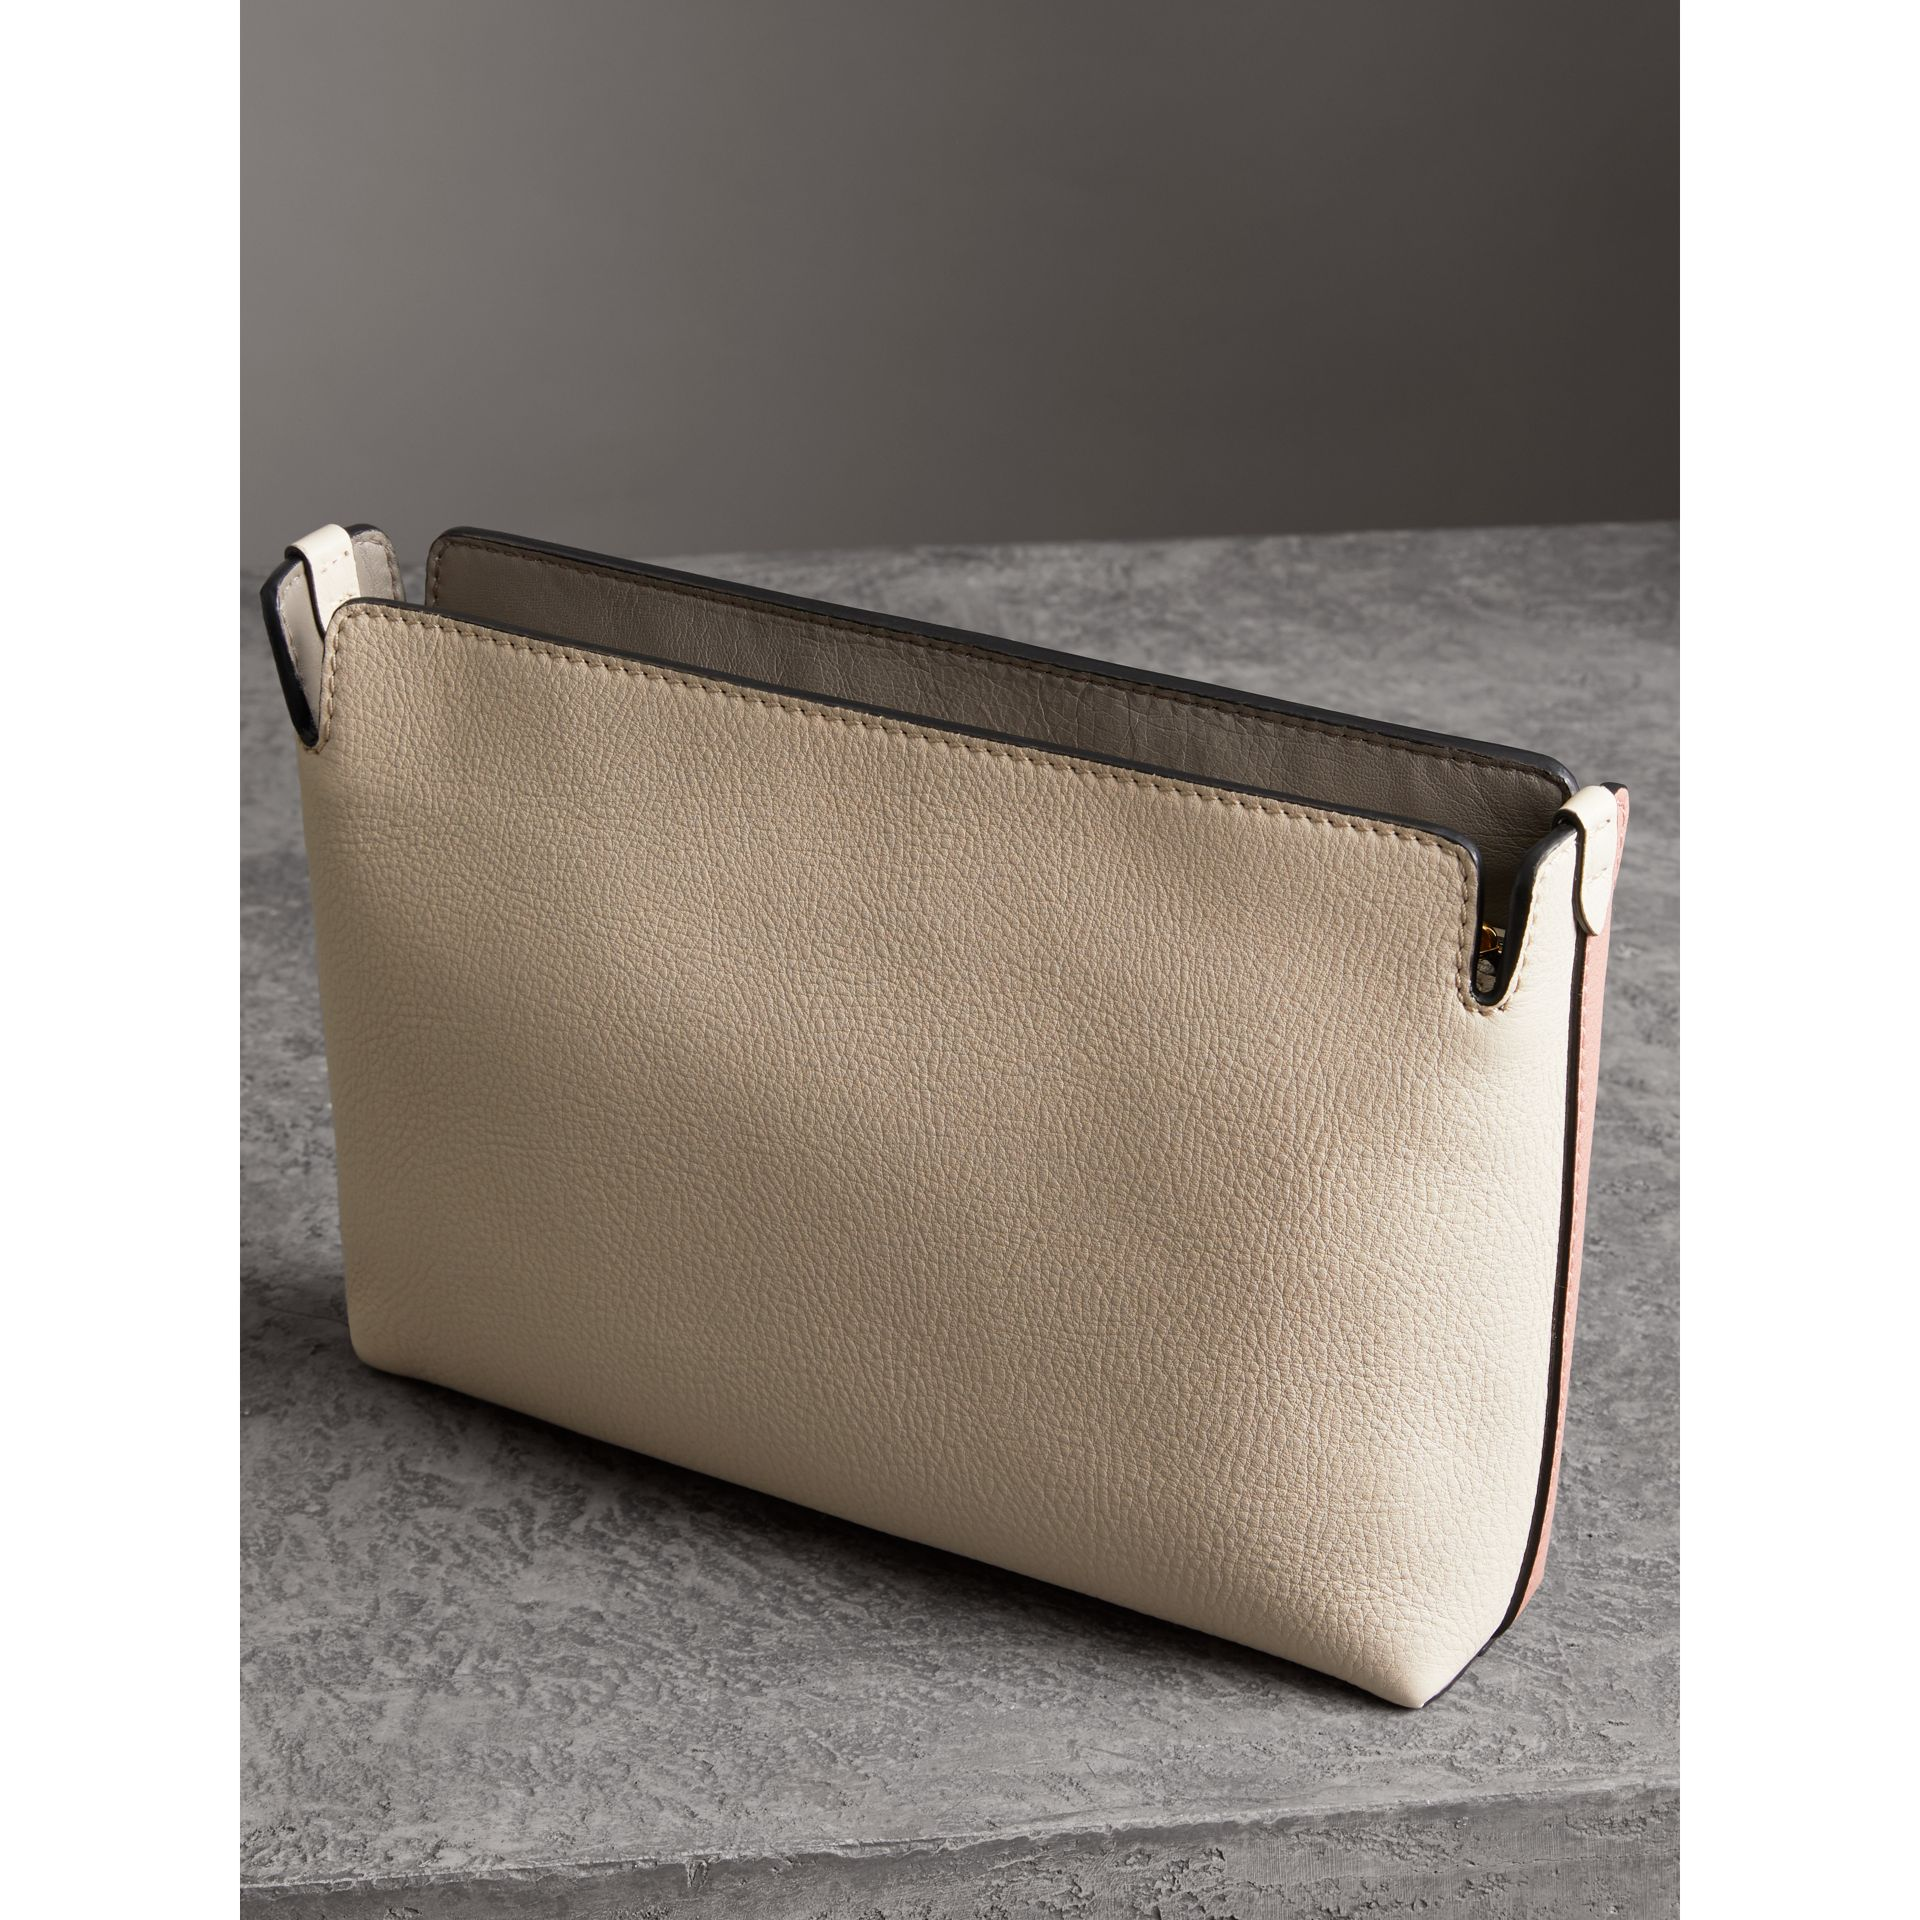 Medium Tri-tone Leather Clutch in Dusty Rose/limestone | Burberry Australia - gallery image 4